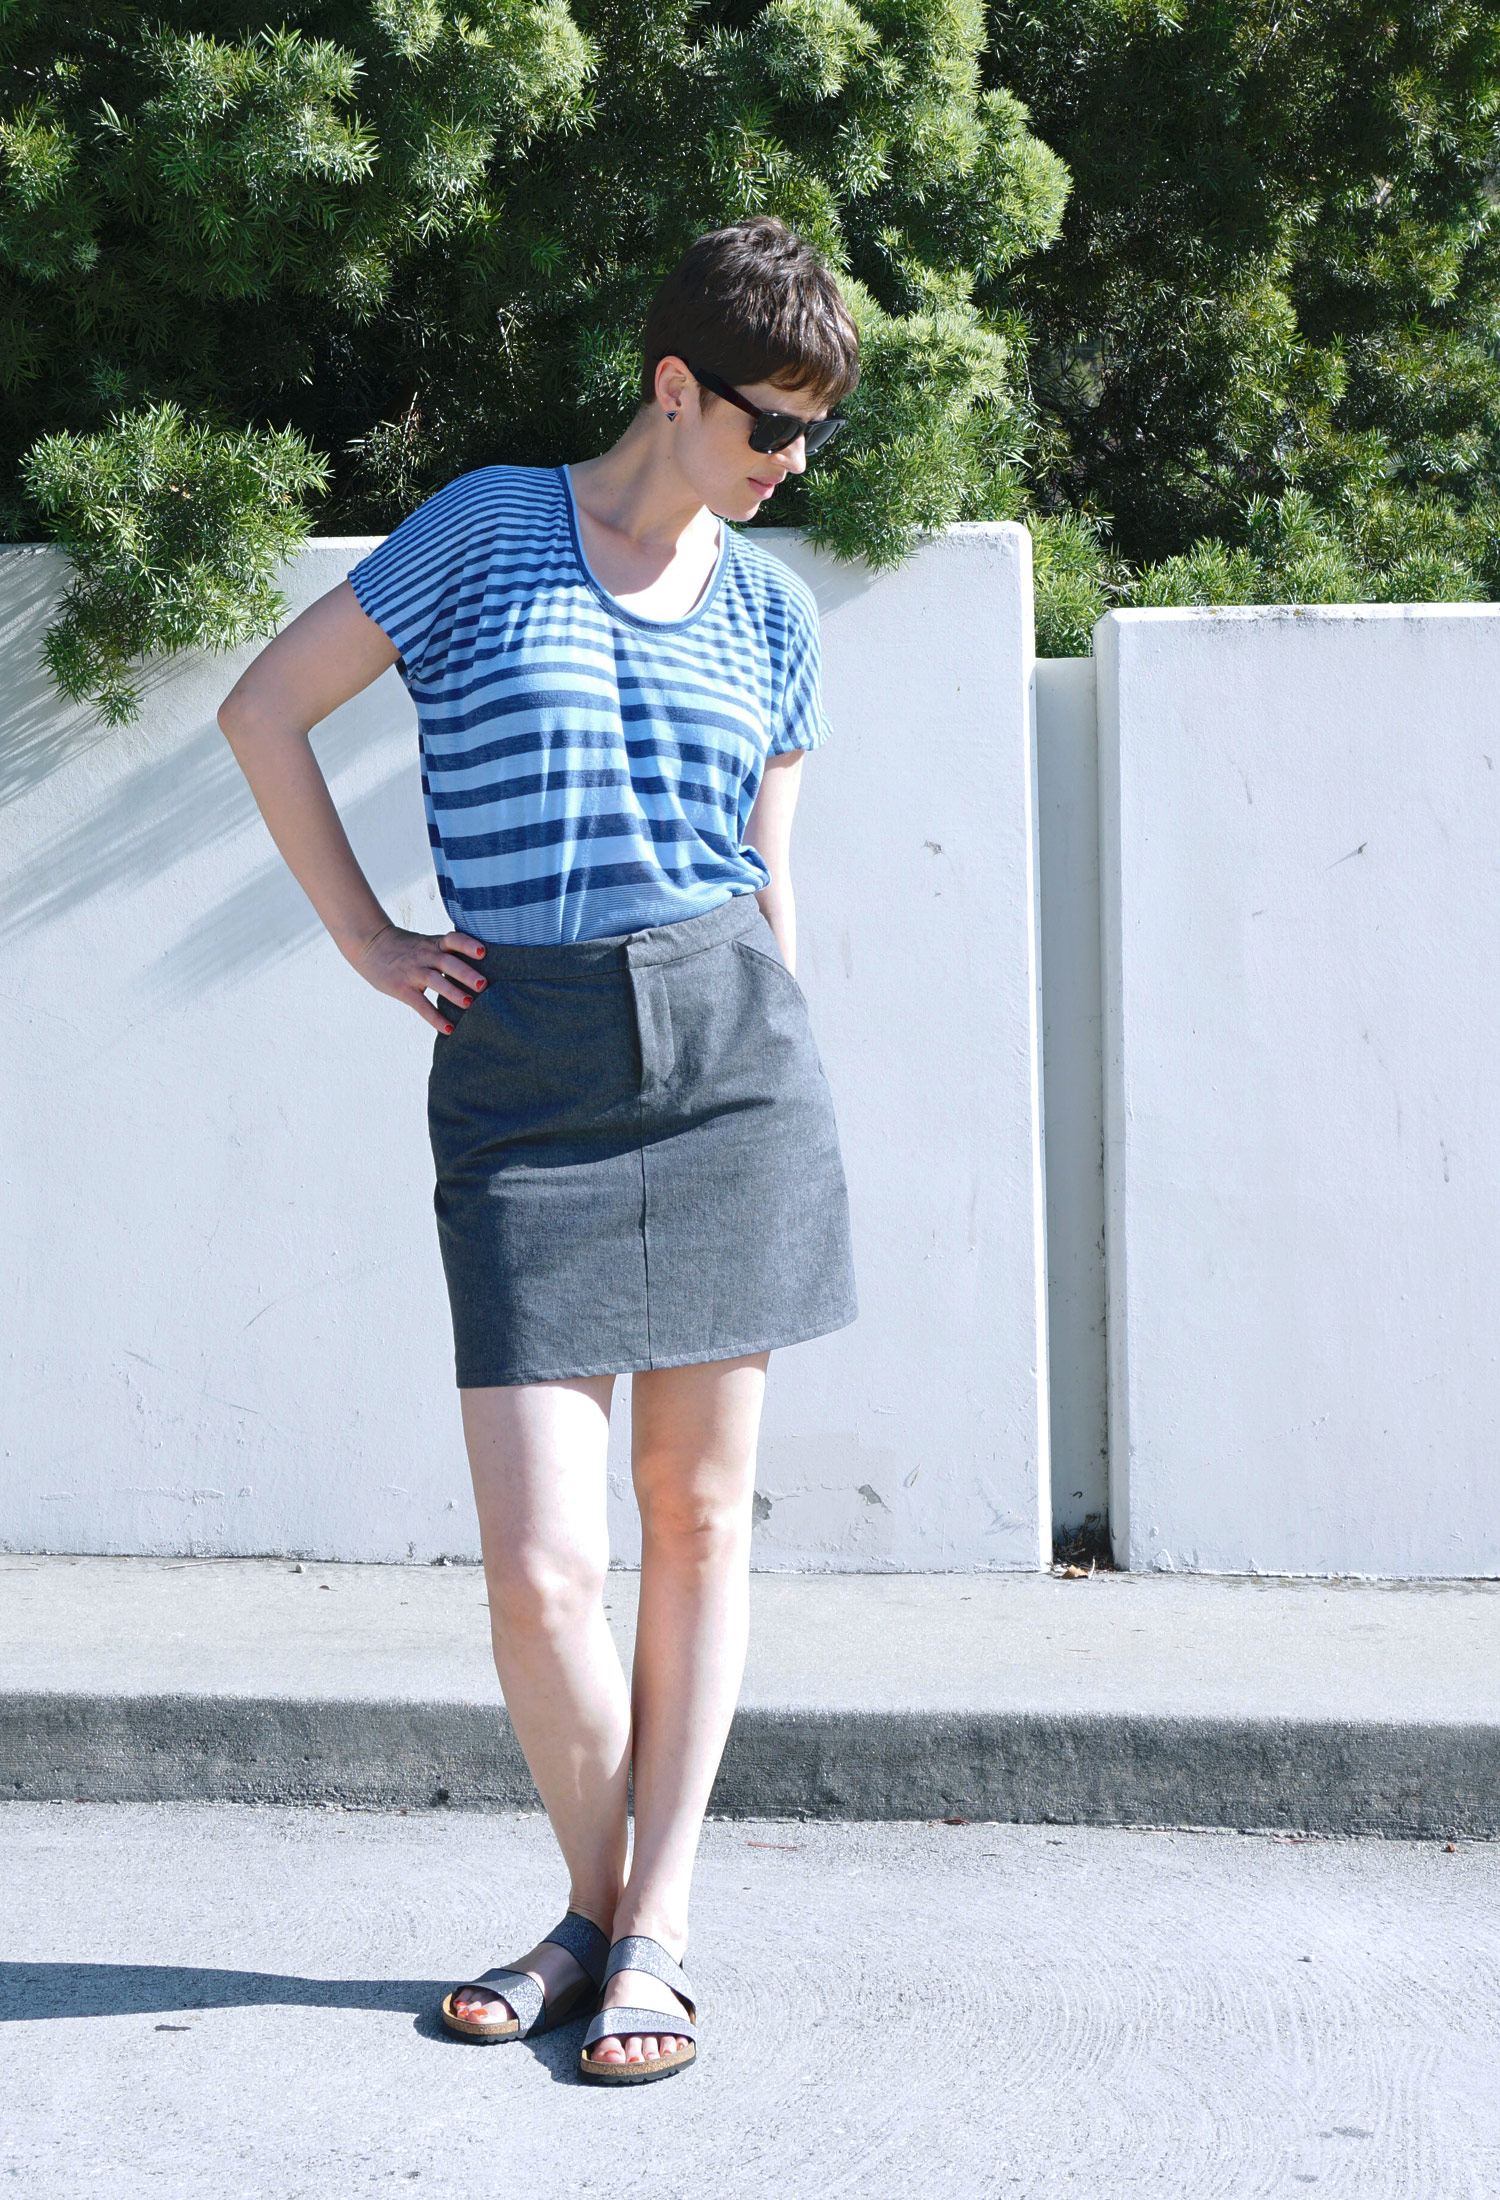 DIY Grey Denim Moss Mini Skirt by Grainline Studio | Sew DIY